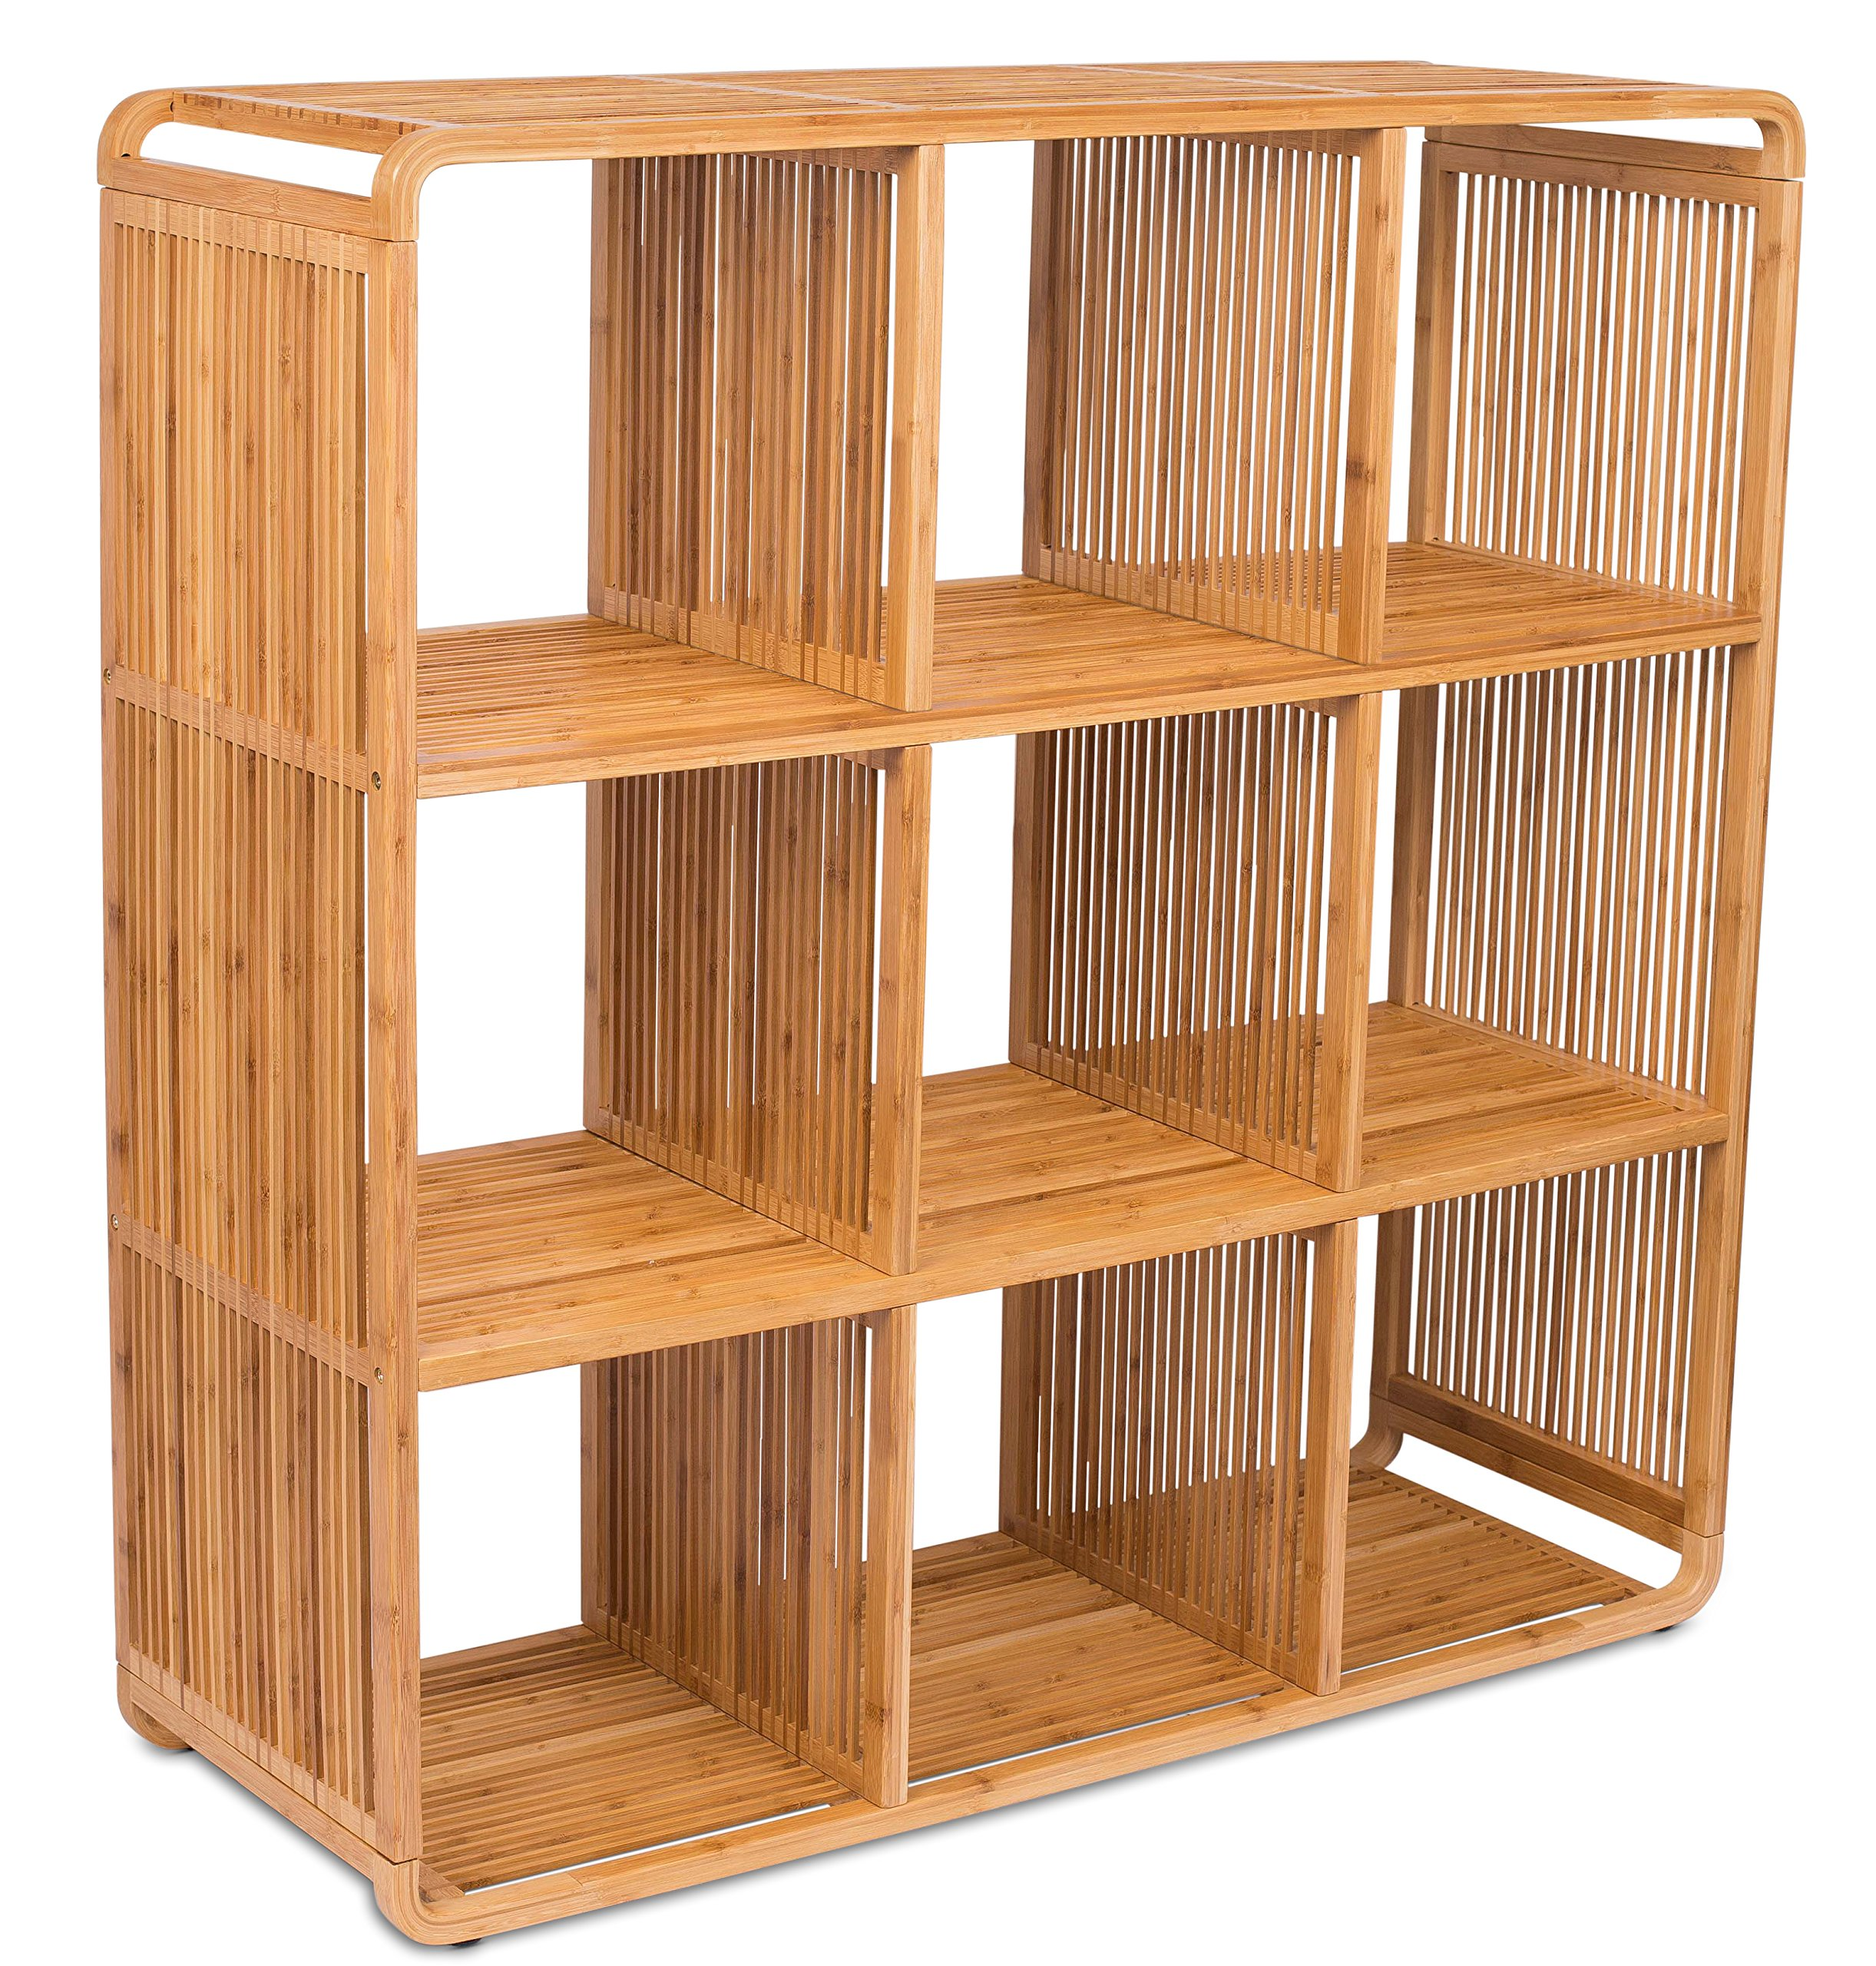 BirdRock Home Bamboo Storage Cube Cabinet | Wooden Storage Cubbies | 9 Cube Storage Unit | Classroom Bedroom Kid's Room Storage Space